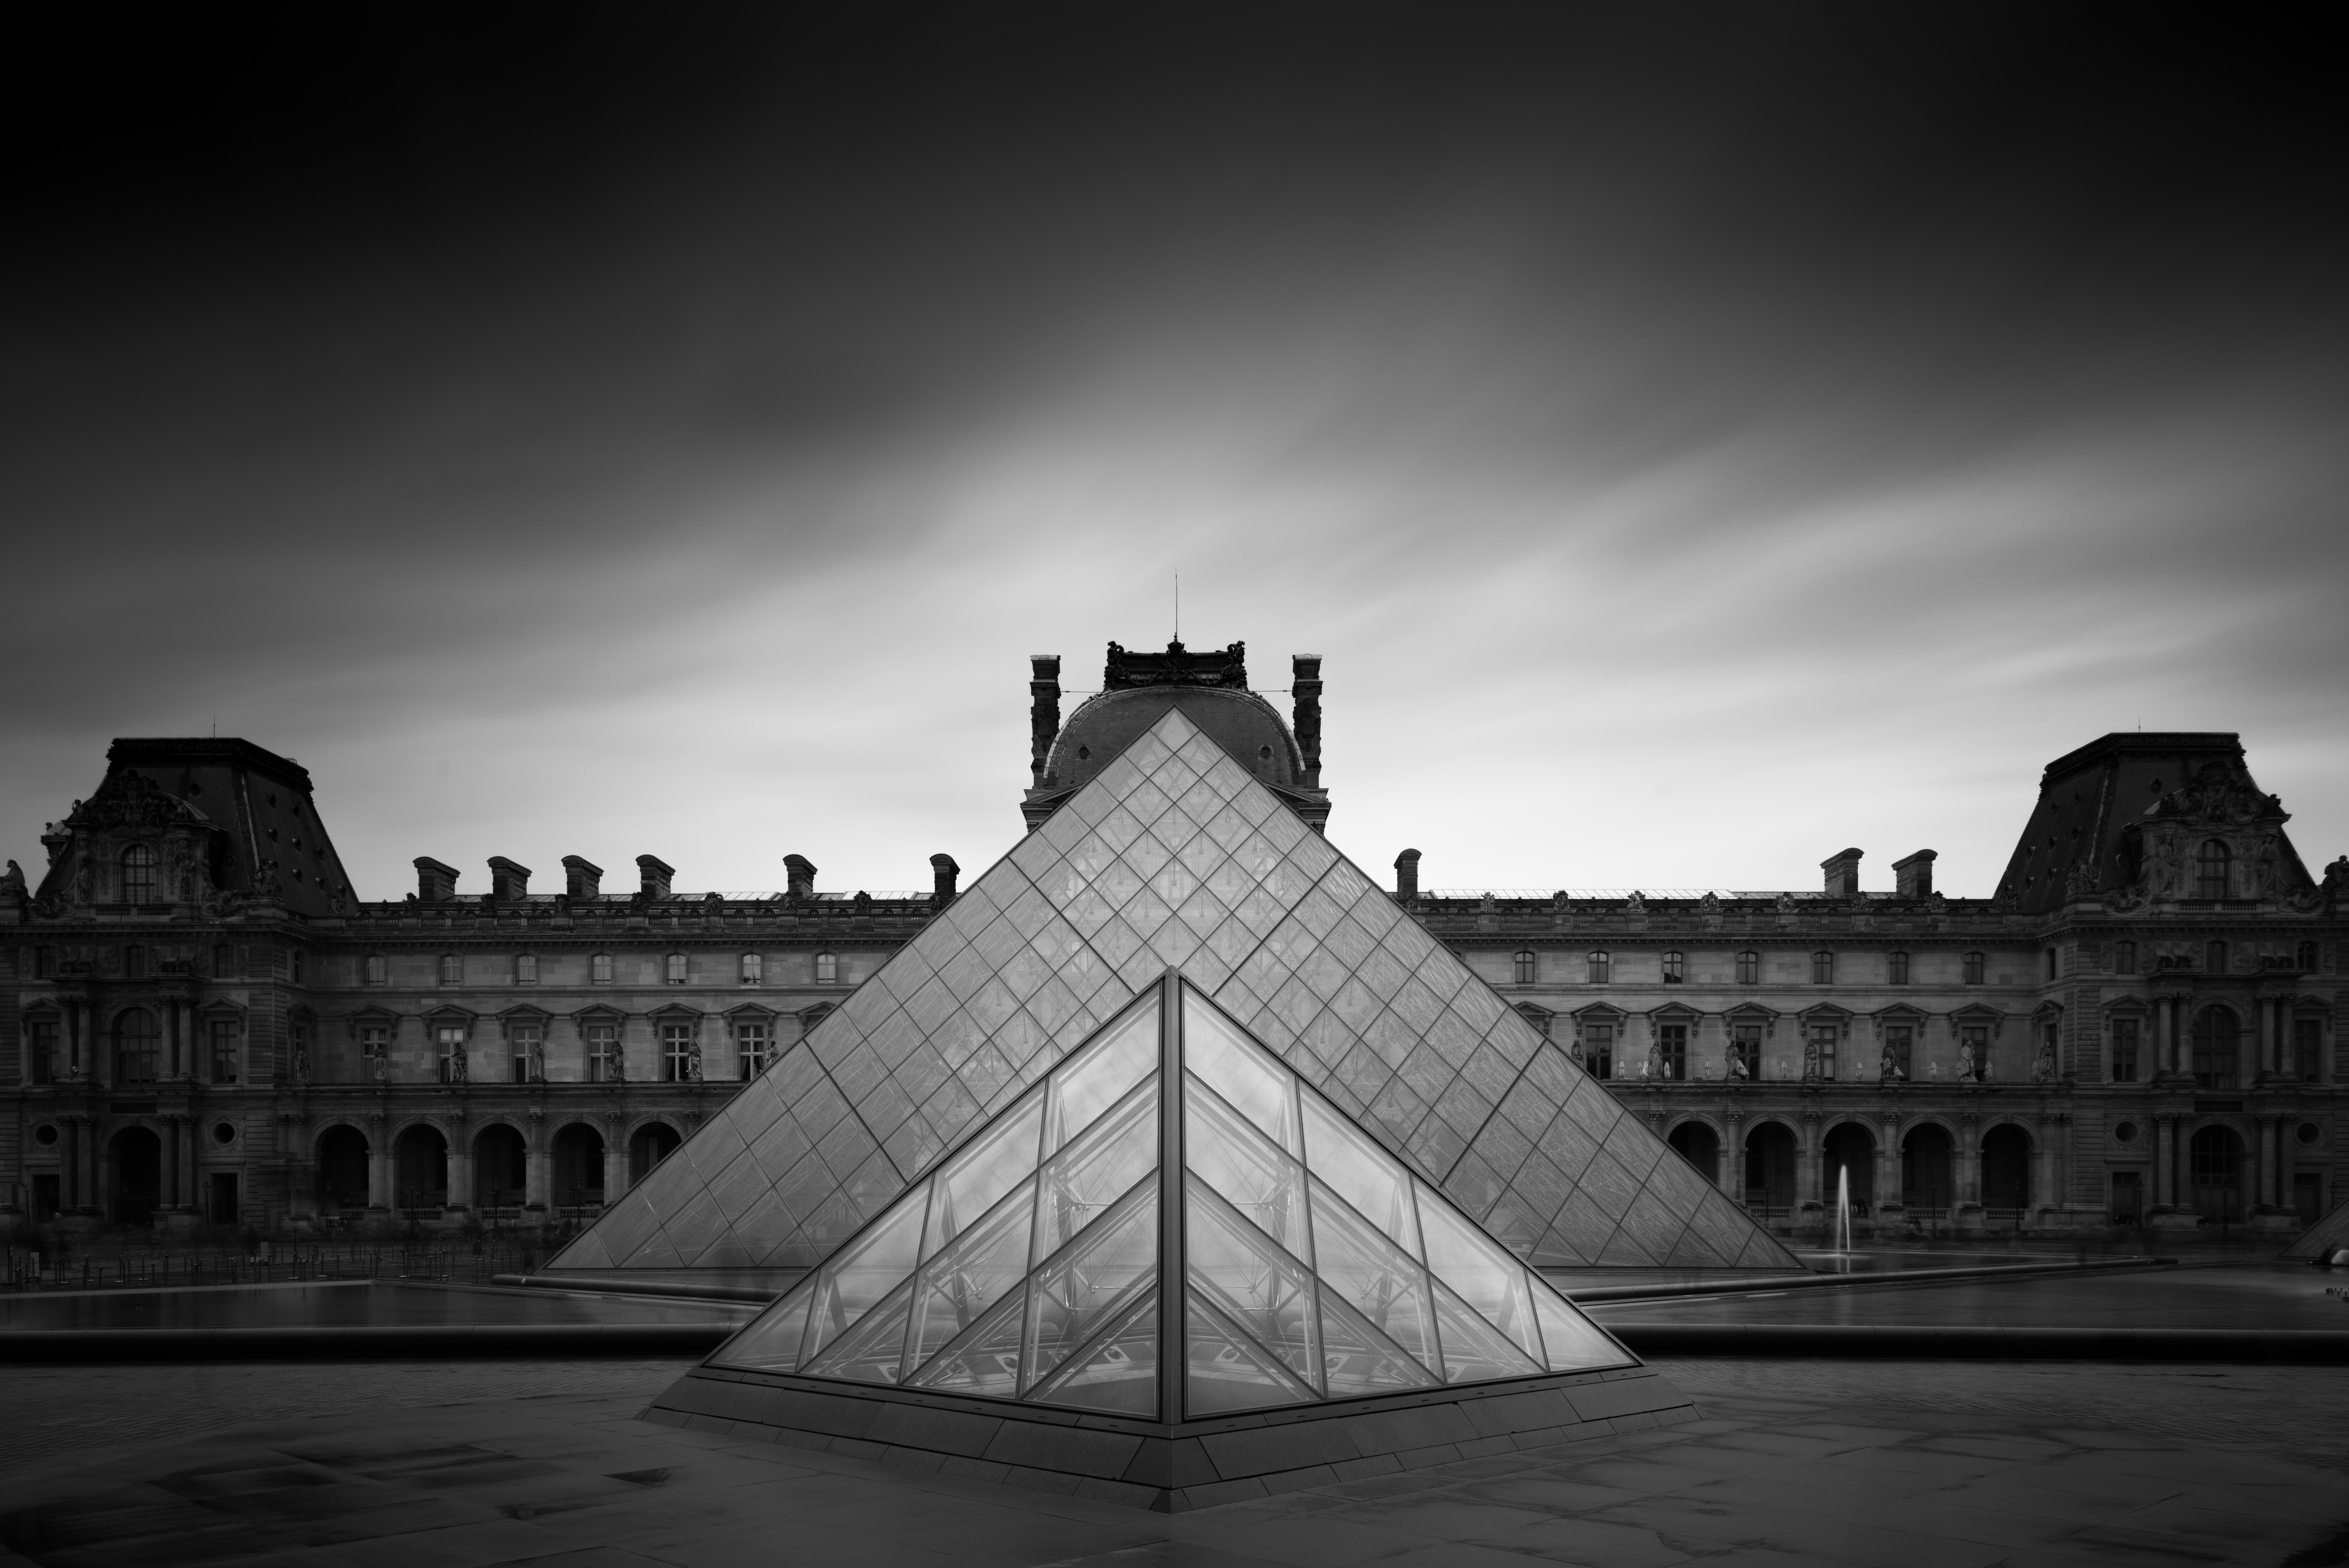 PYRAMIDE DU LOUVRE __ TWO